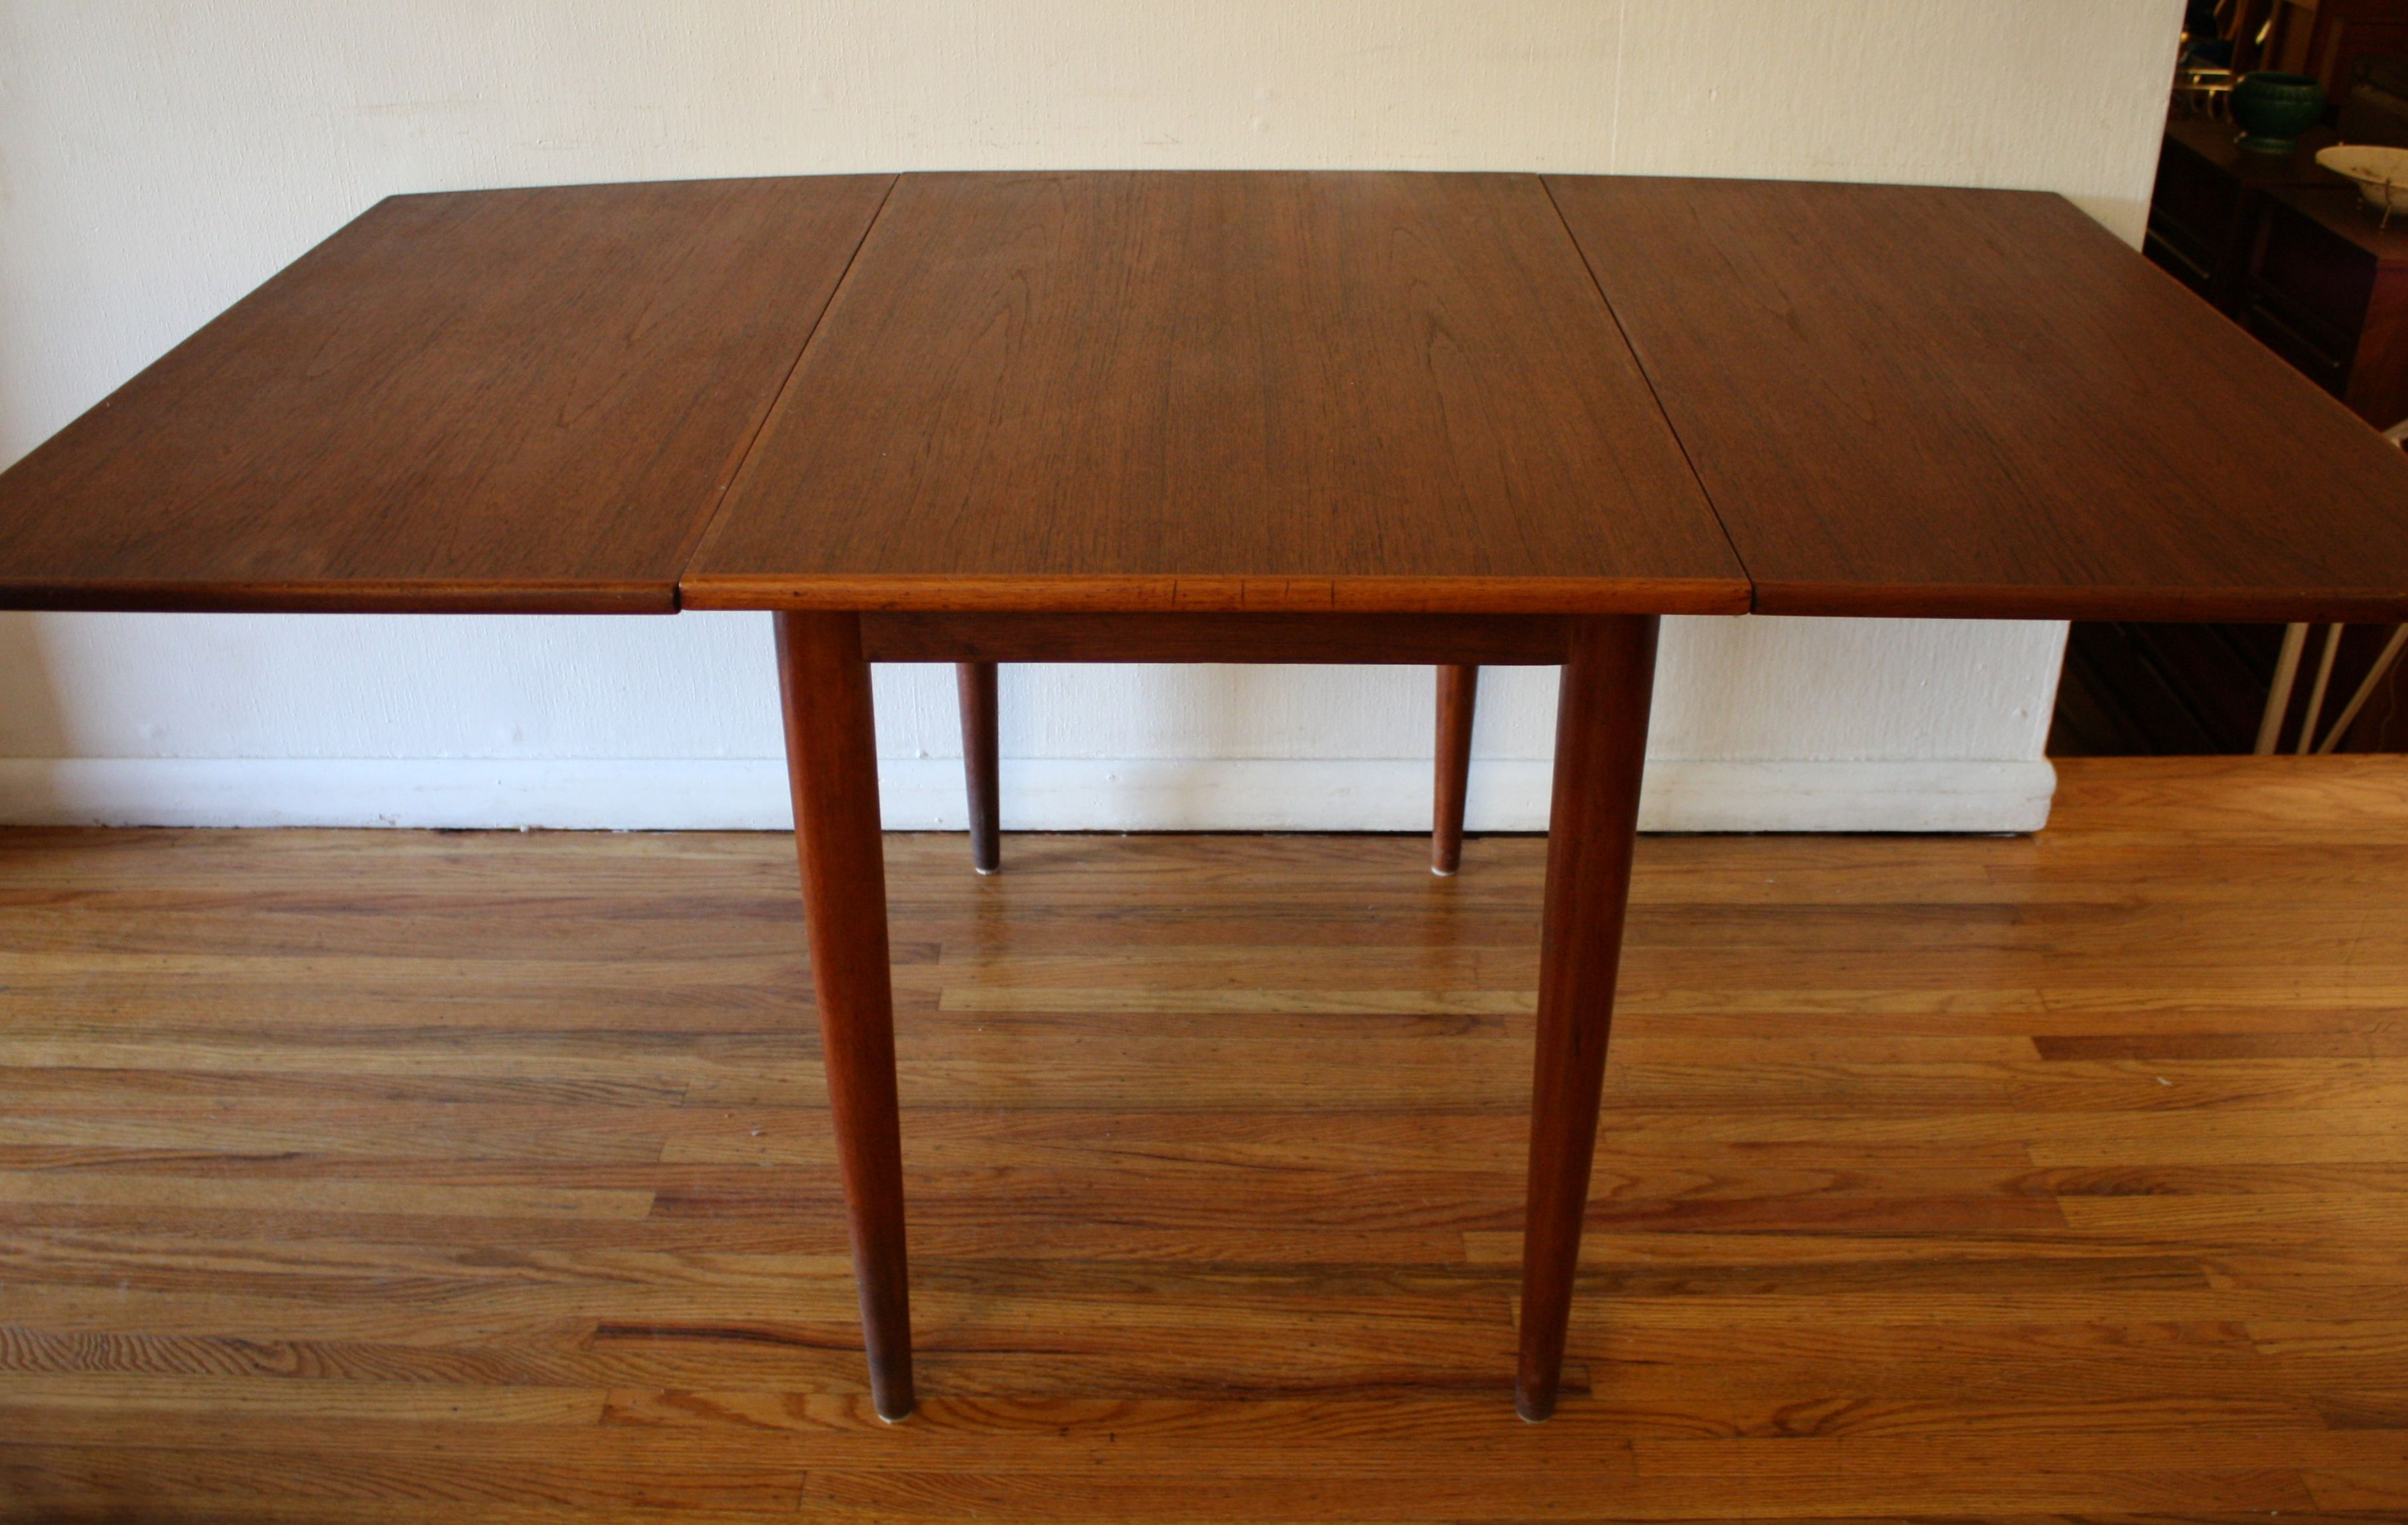 Simple Folding Dining Table Design with Wood Material and Small Legs on Hardwood Flooring